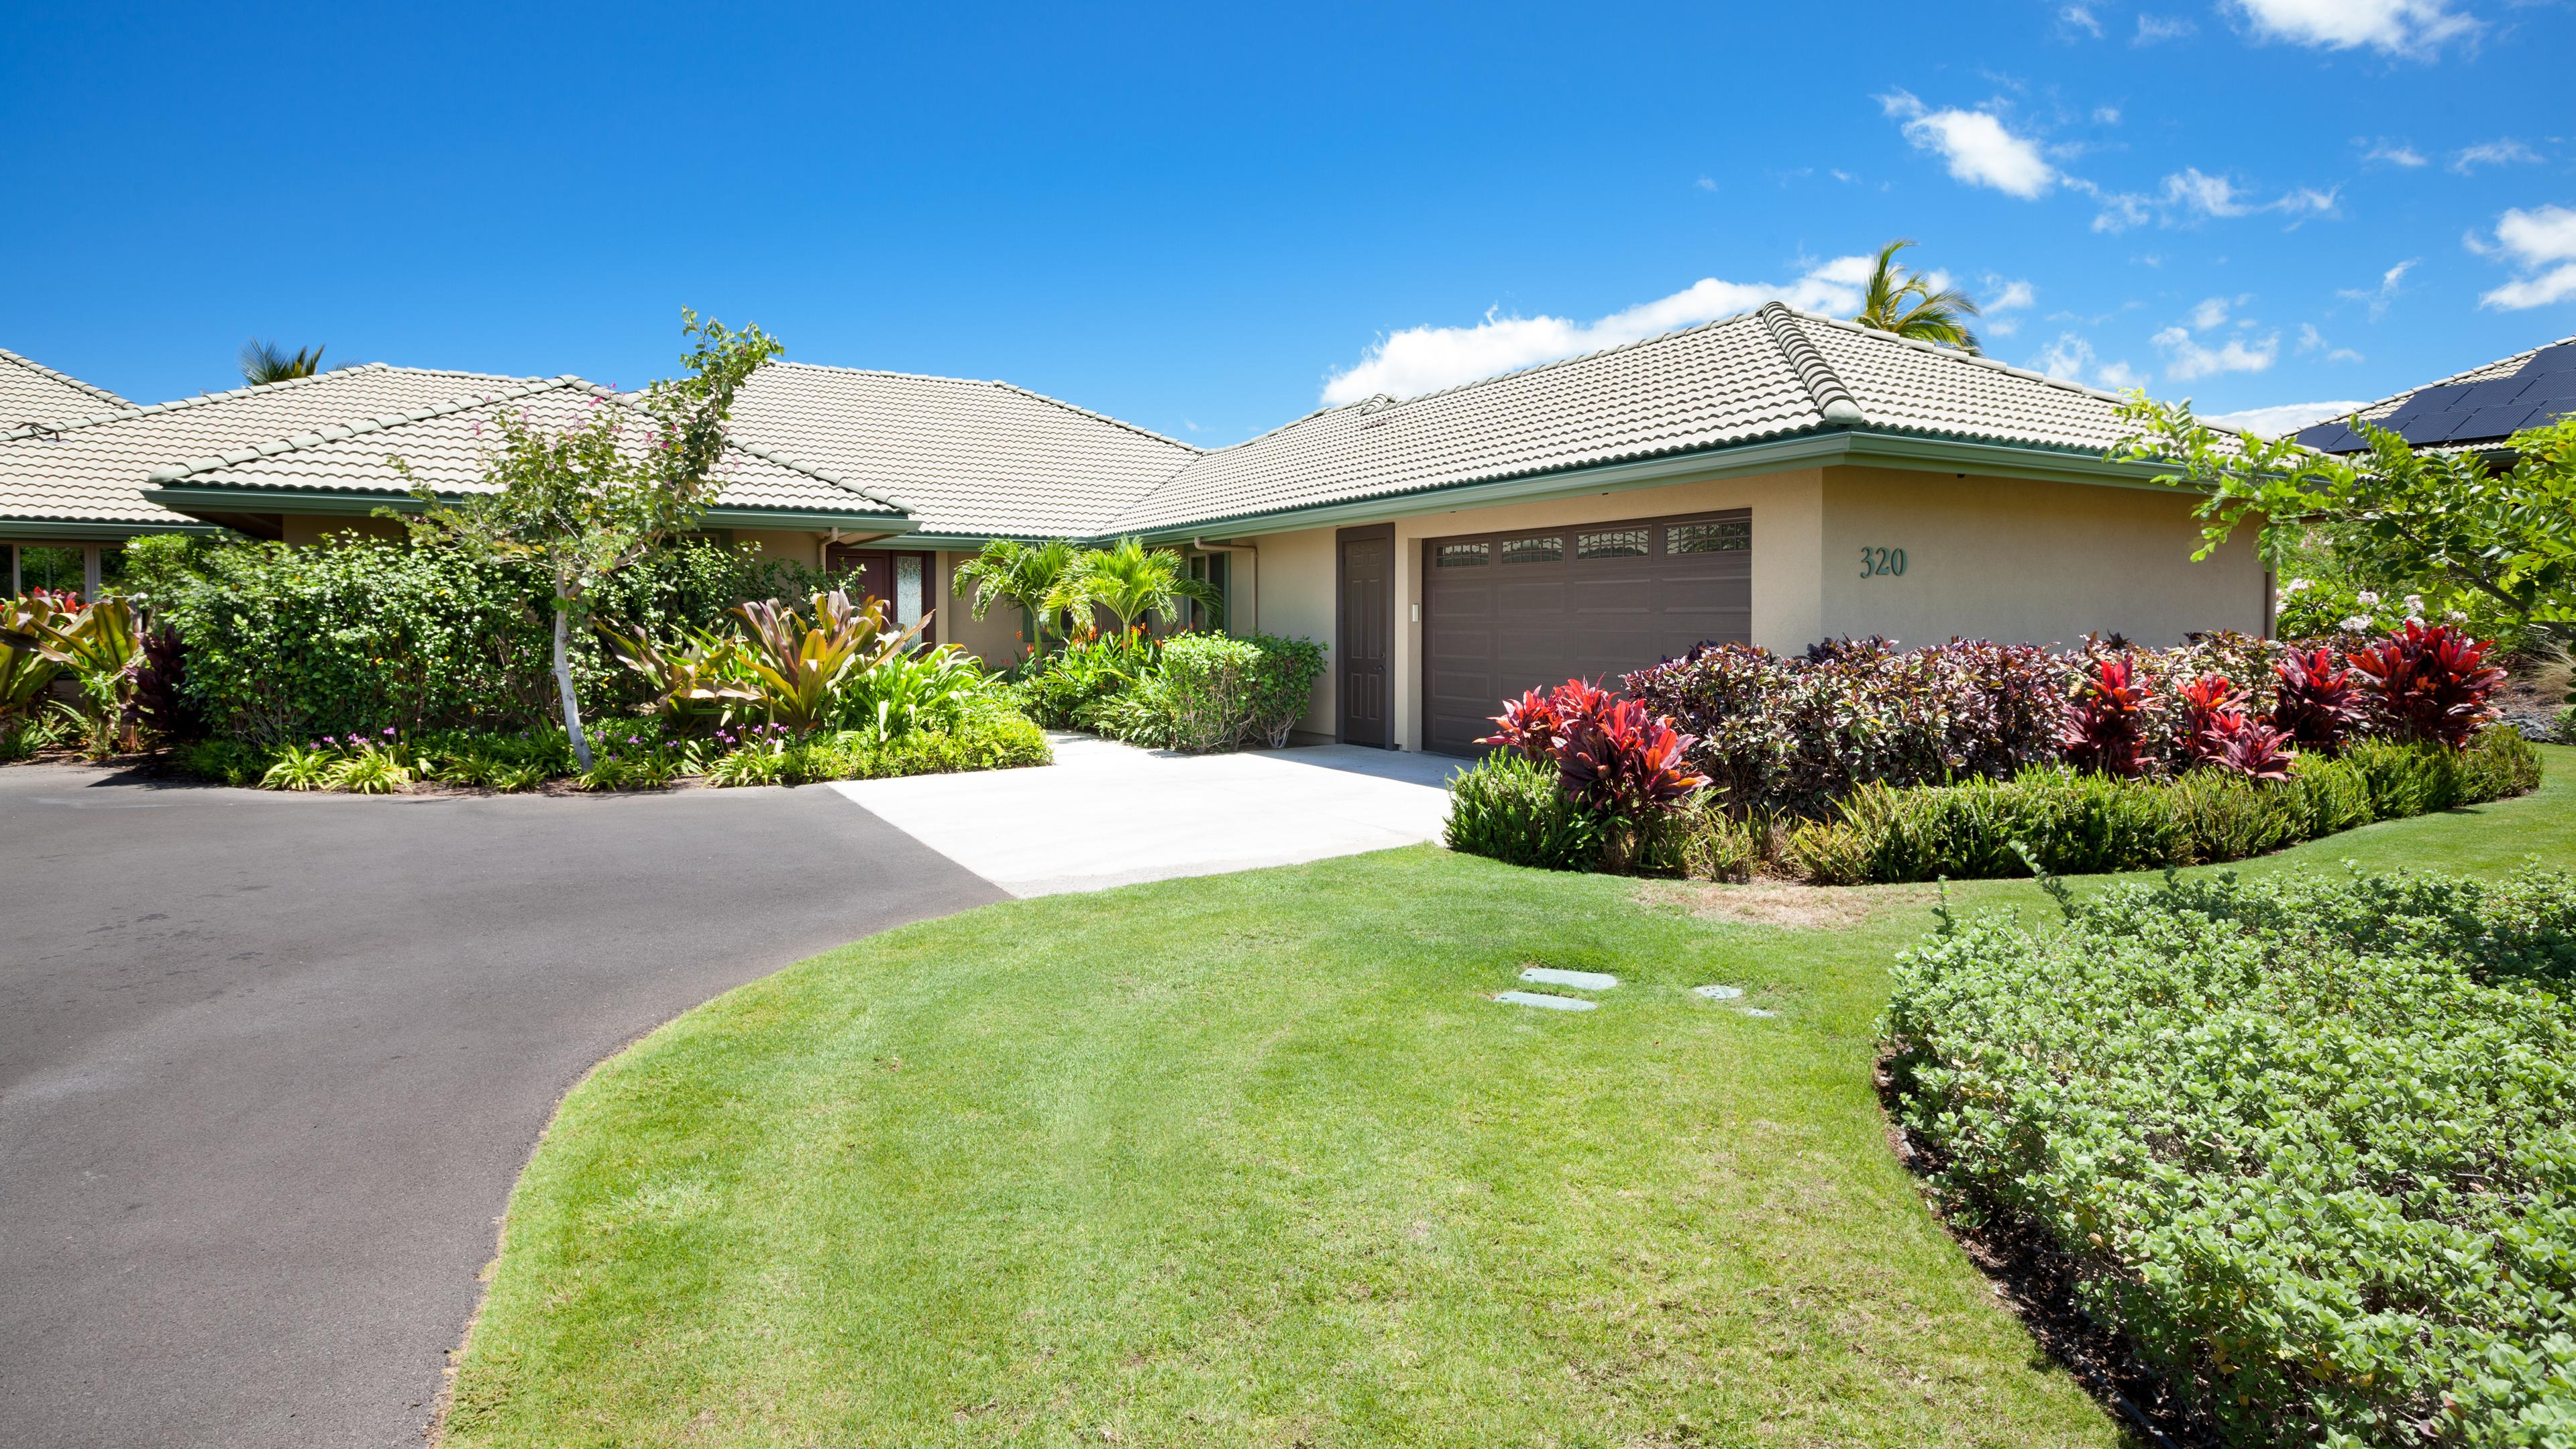 Mauna Kea Dream - large home with private double garage